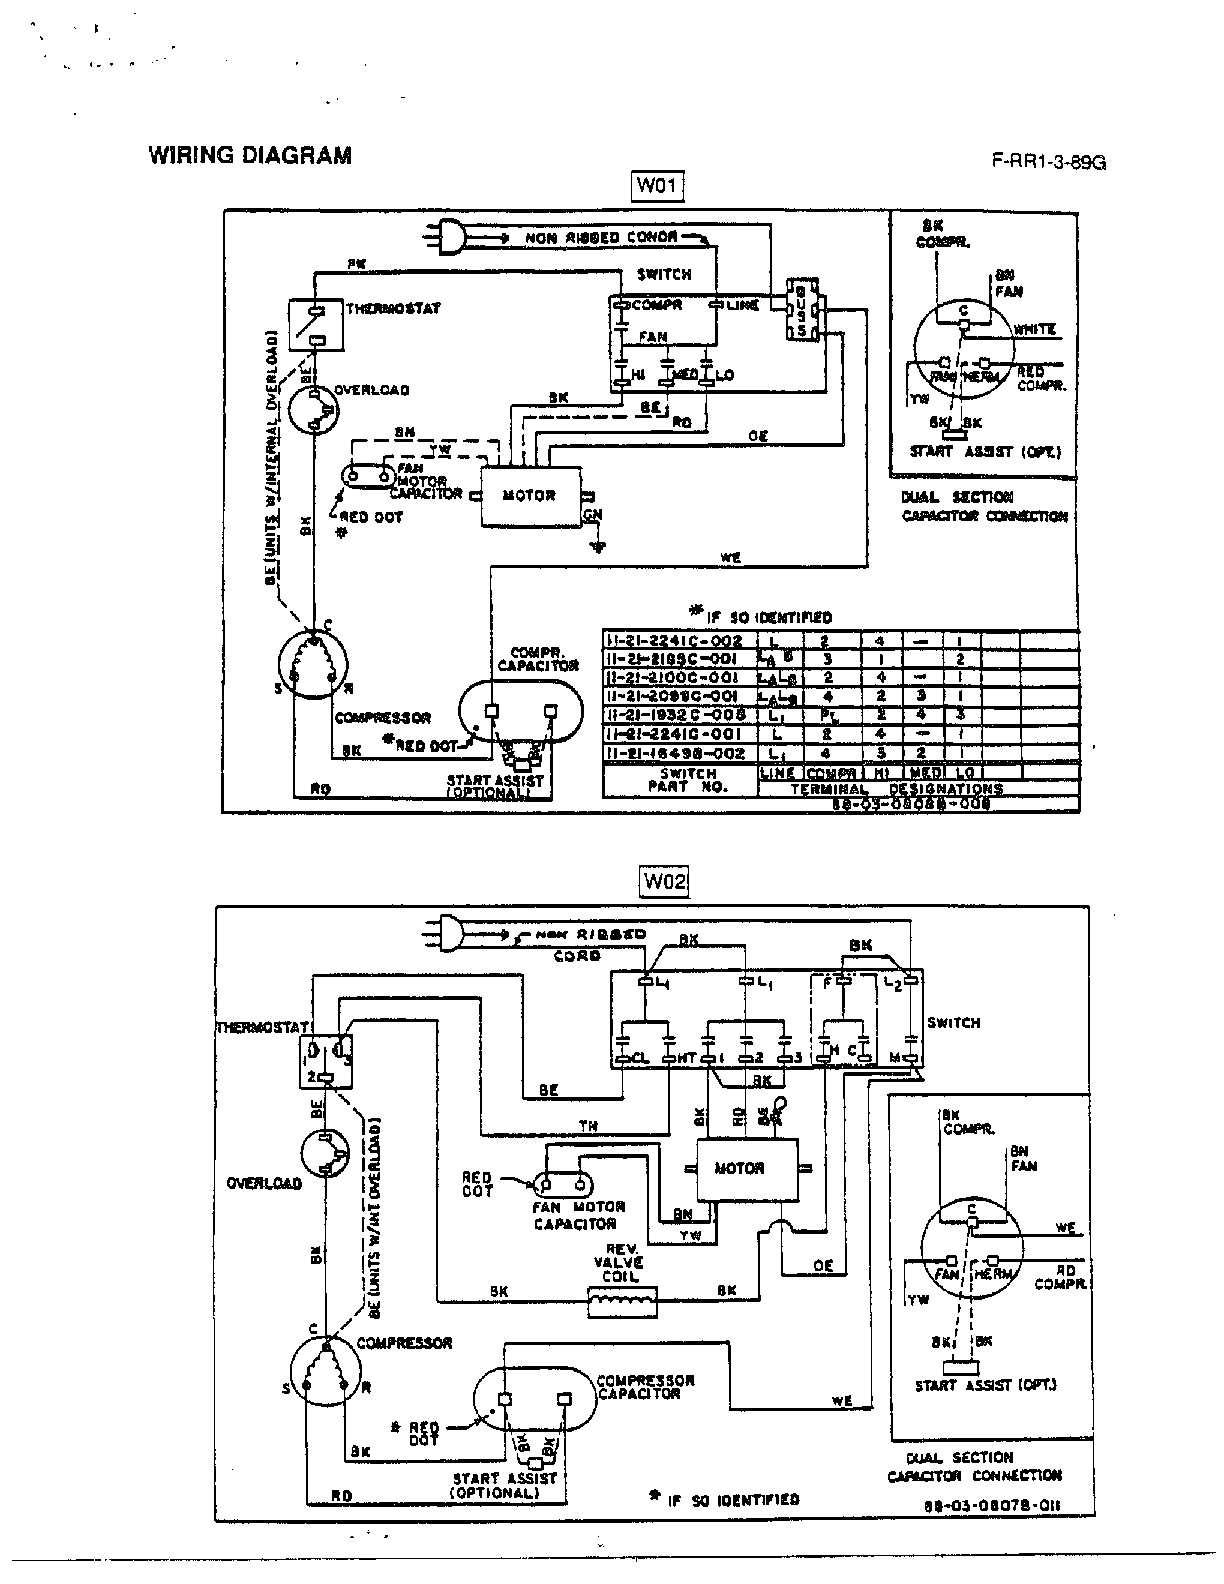 medium resolution of funny wiring diagrams electrical wiring diagram fun wiring diagram wiring diagram new